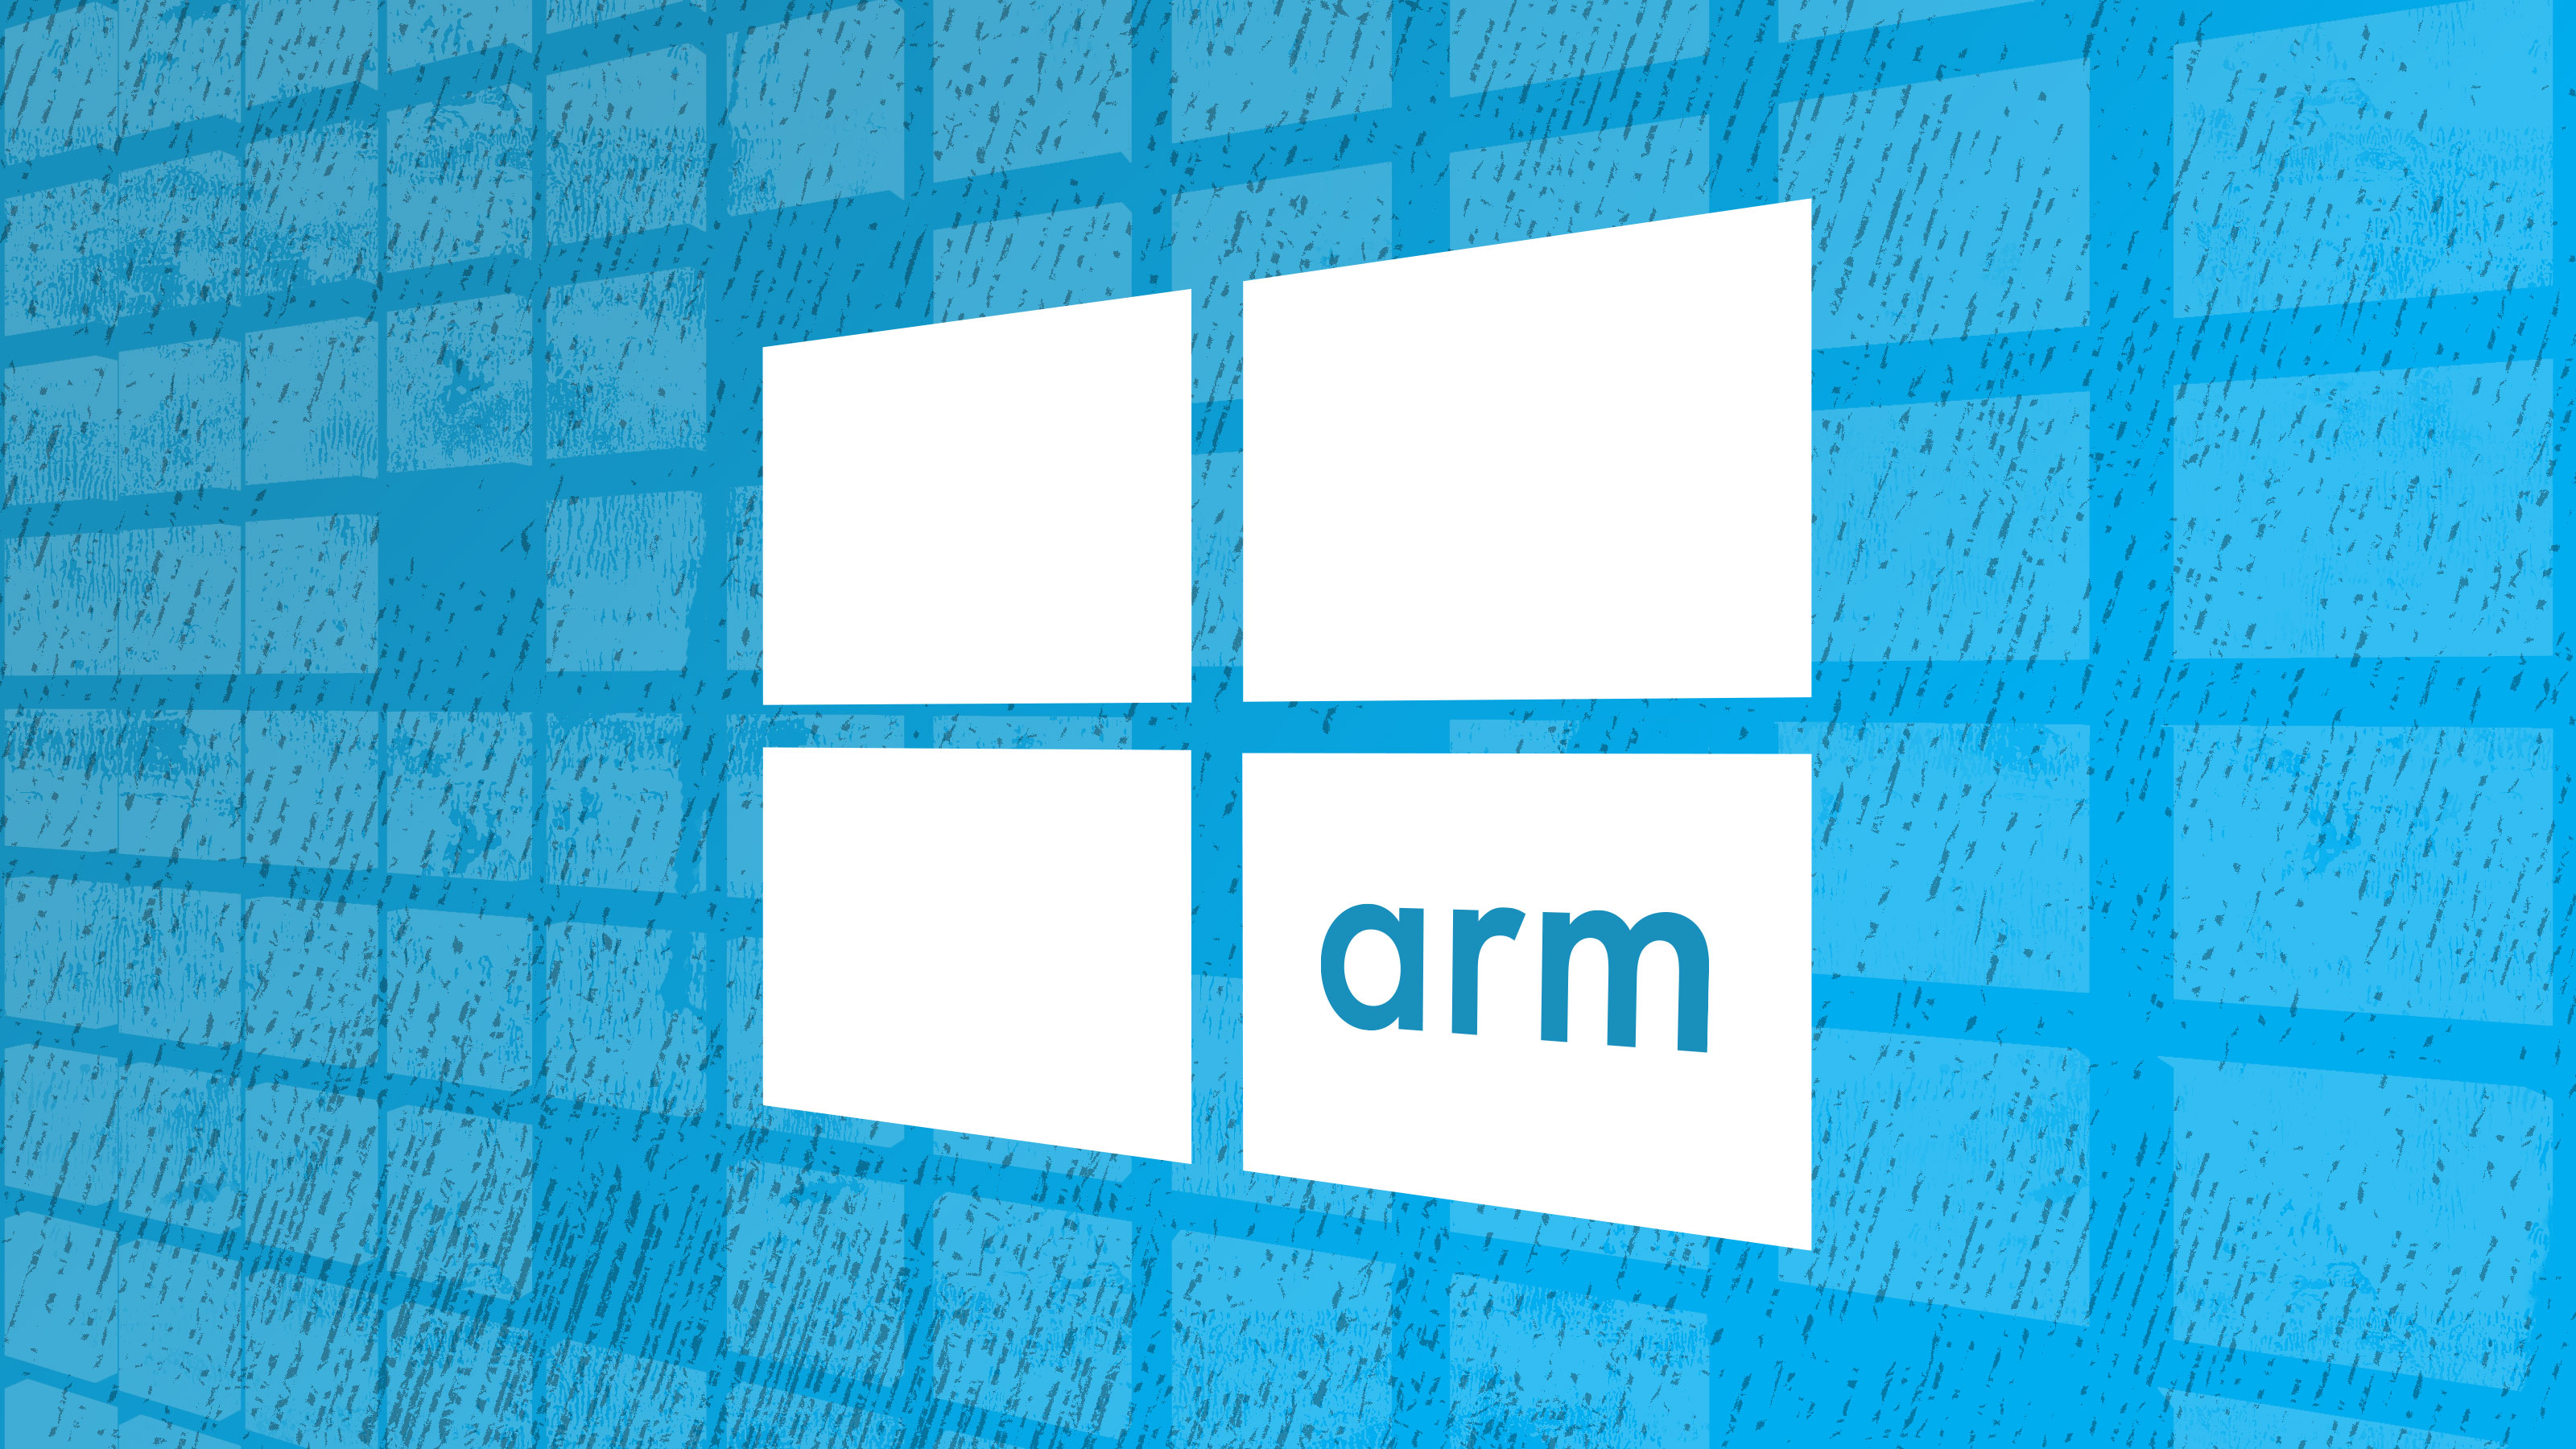 Microsoft launches Windows 10 on ARM, with HP and ASUS promising 20+